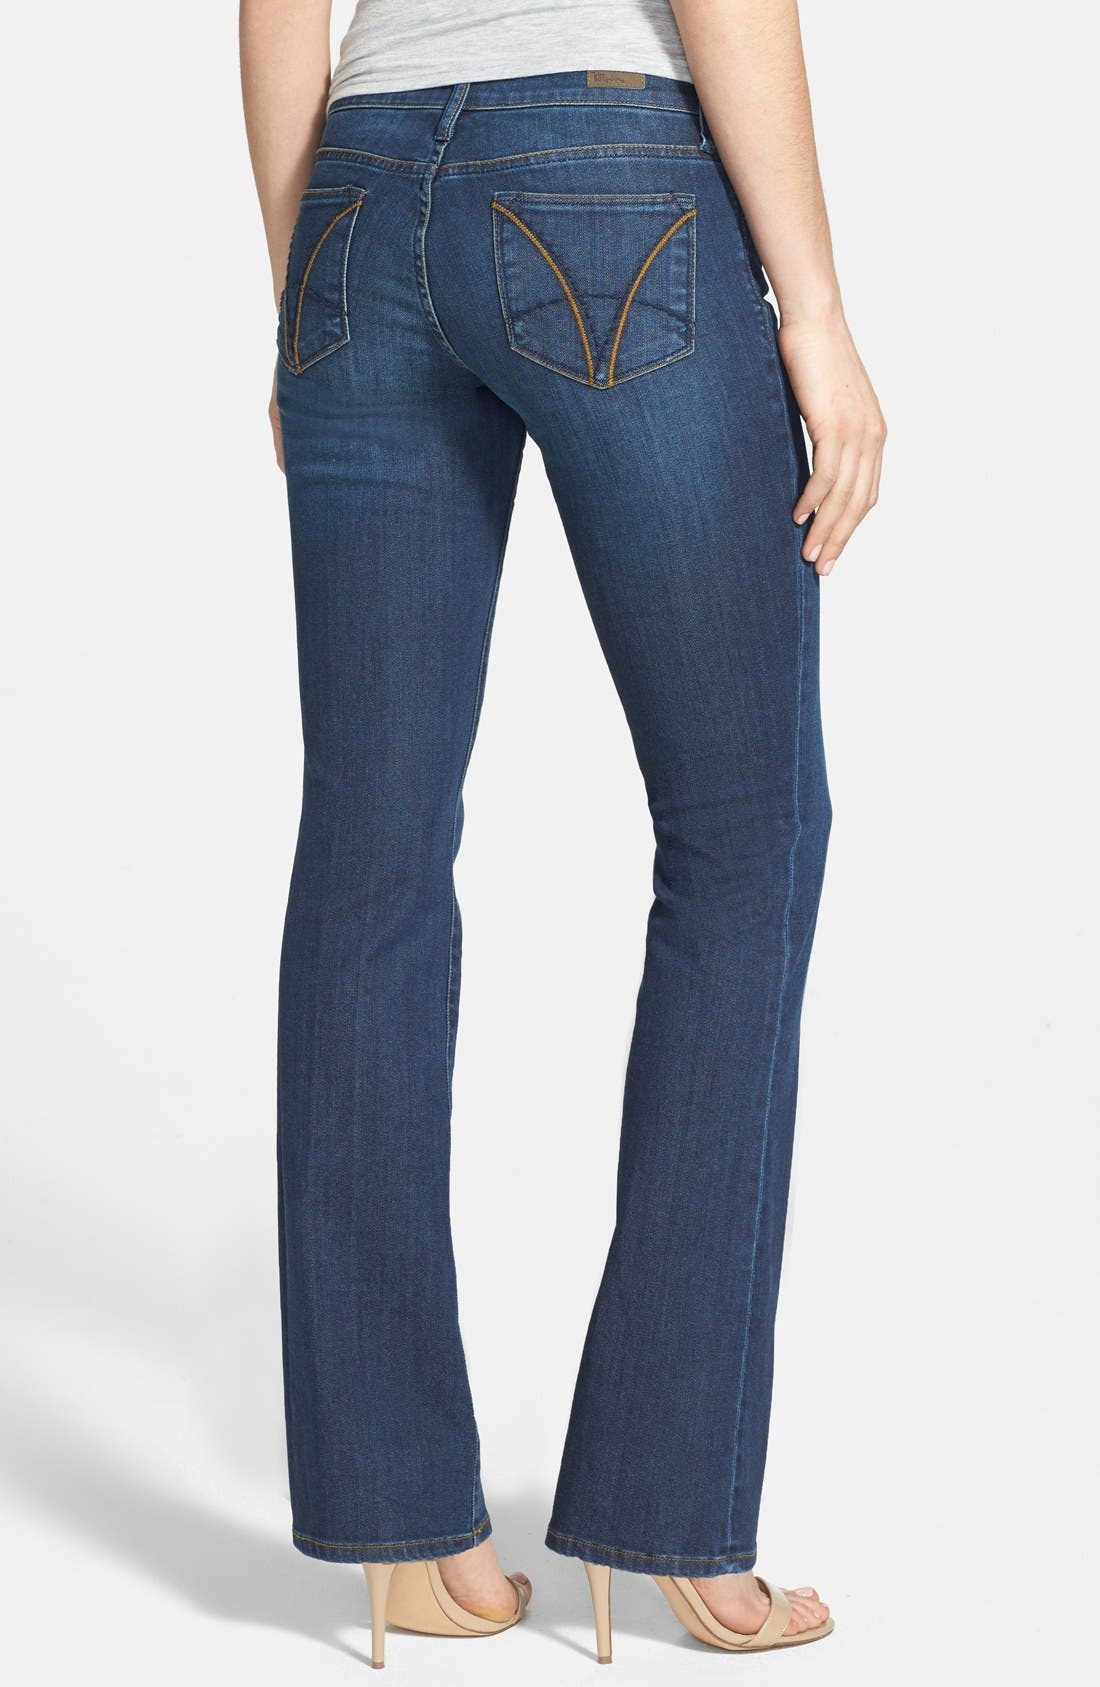 Alternate Image 2  - KUT from the Kloth 'Farrah' Baby Bootcut Jeans (Whim) (Short)